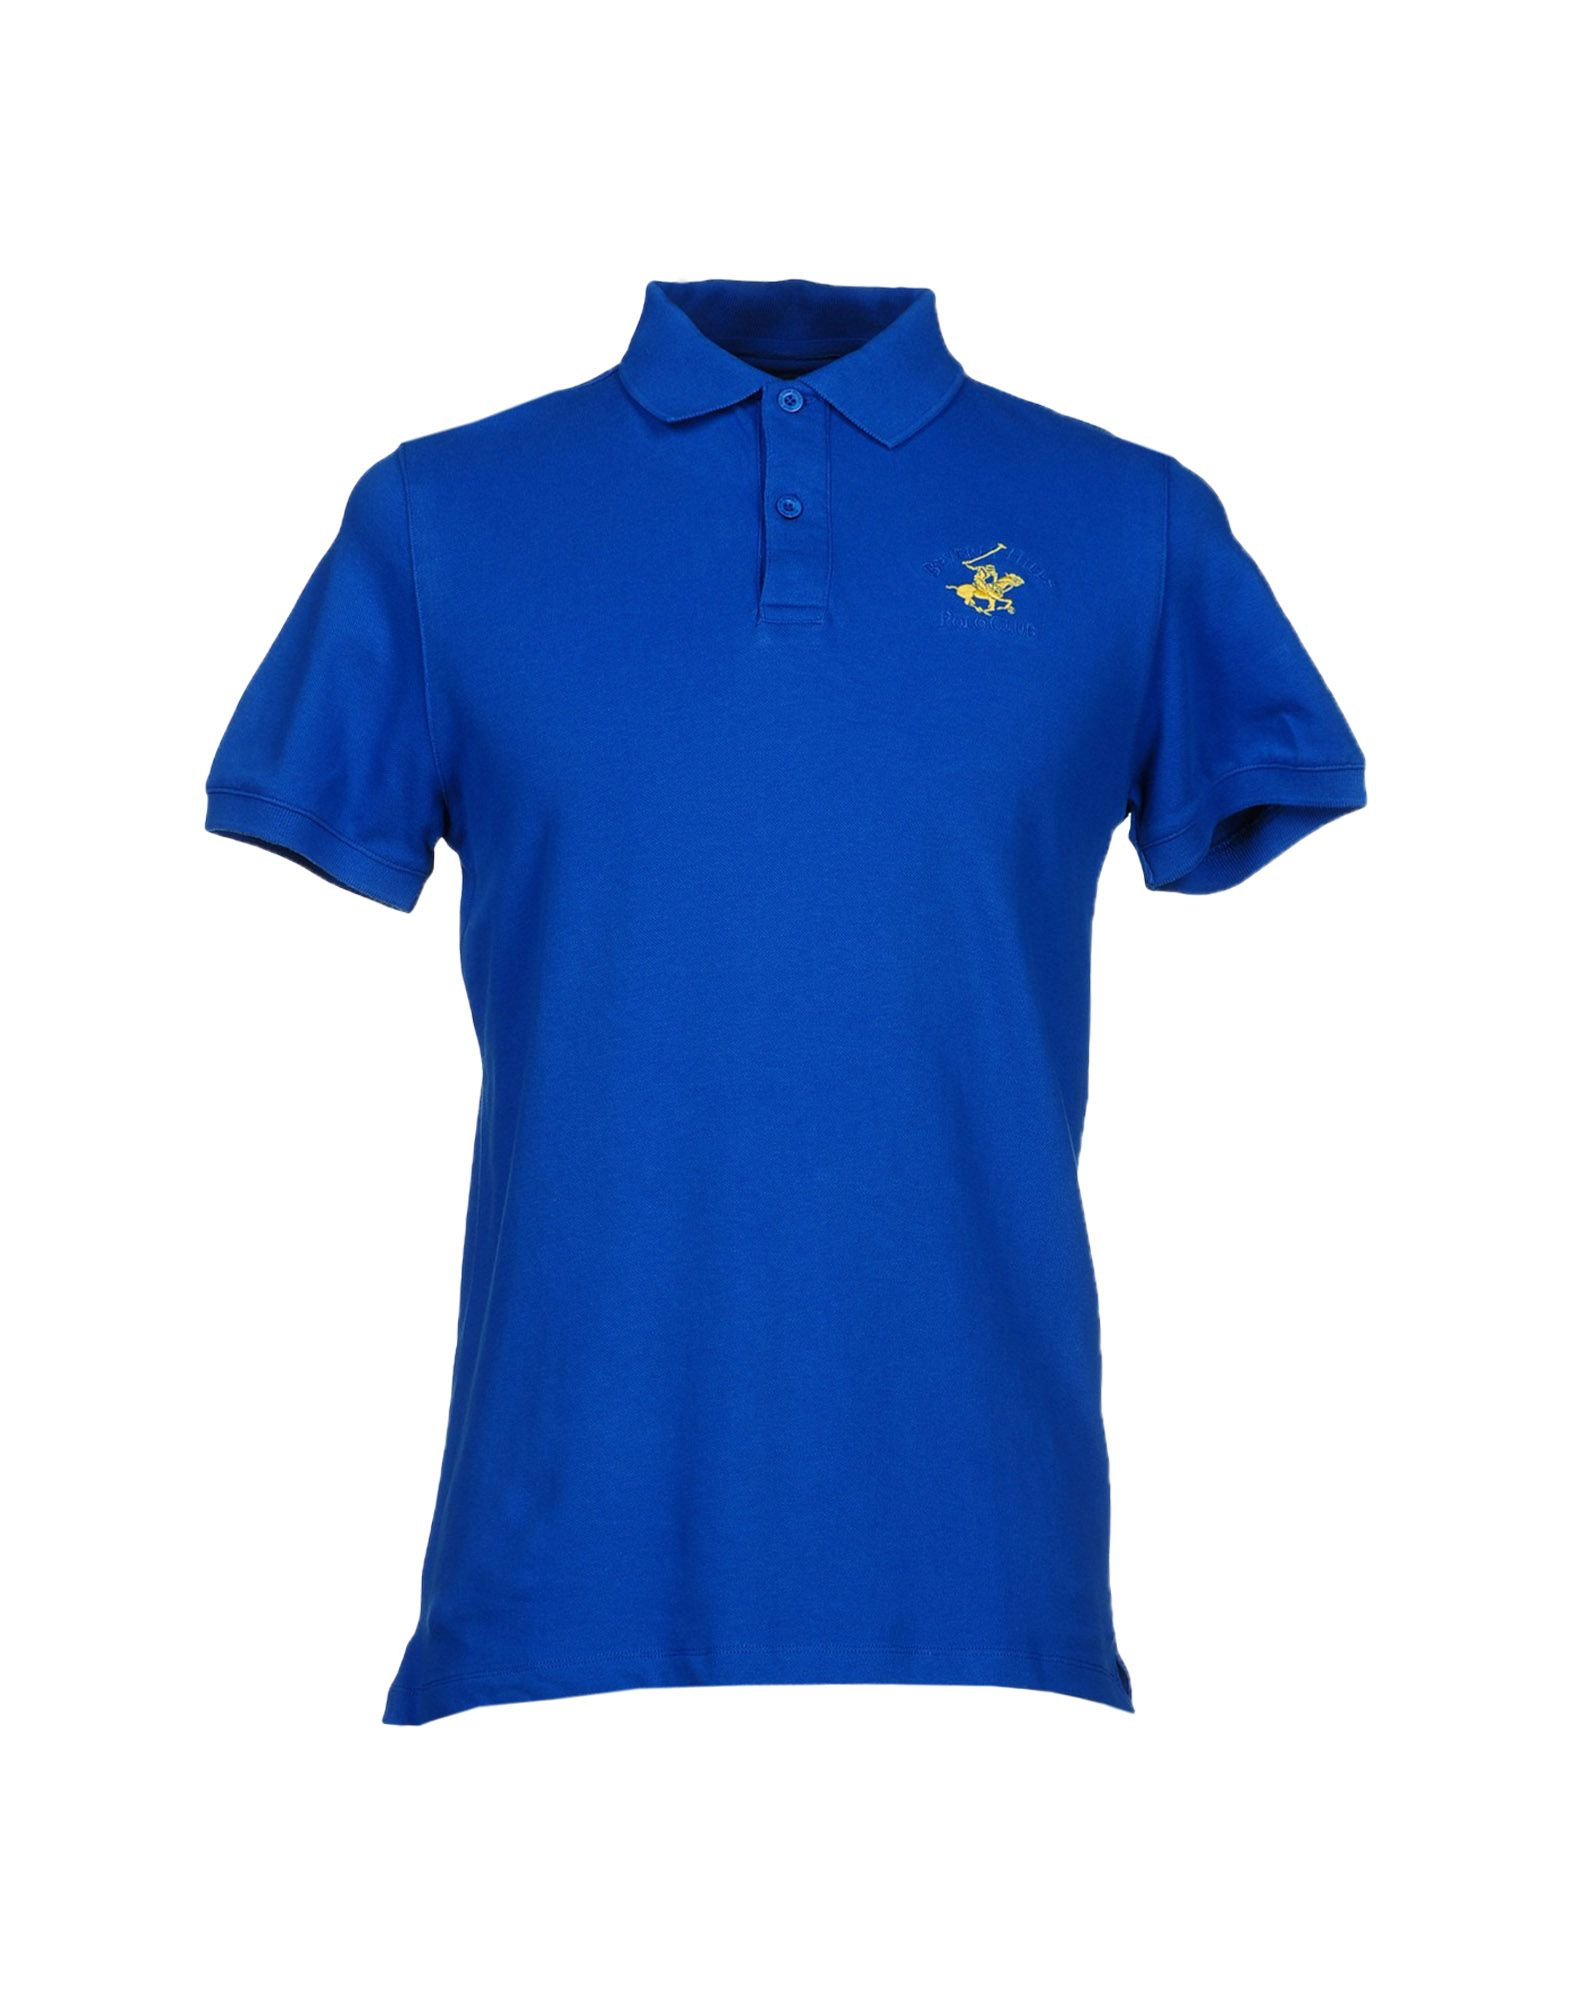 Beverly Hills Polo Club Polo Shirt in Blue for Men